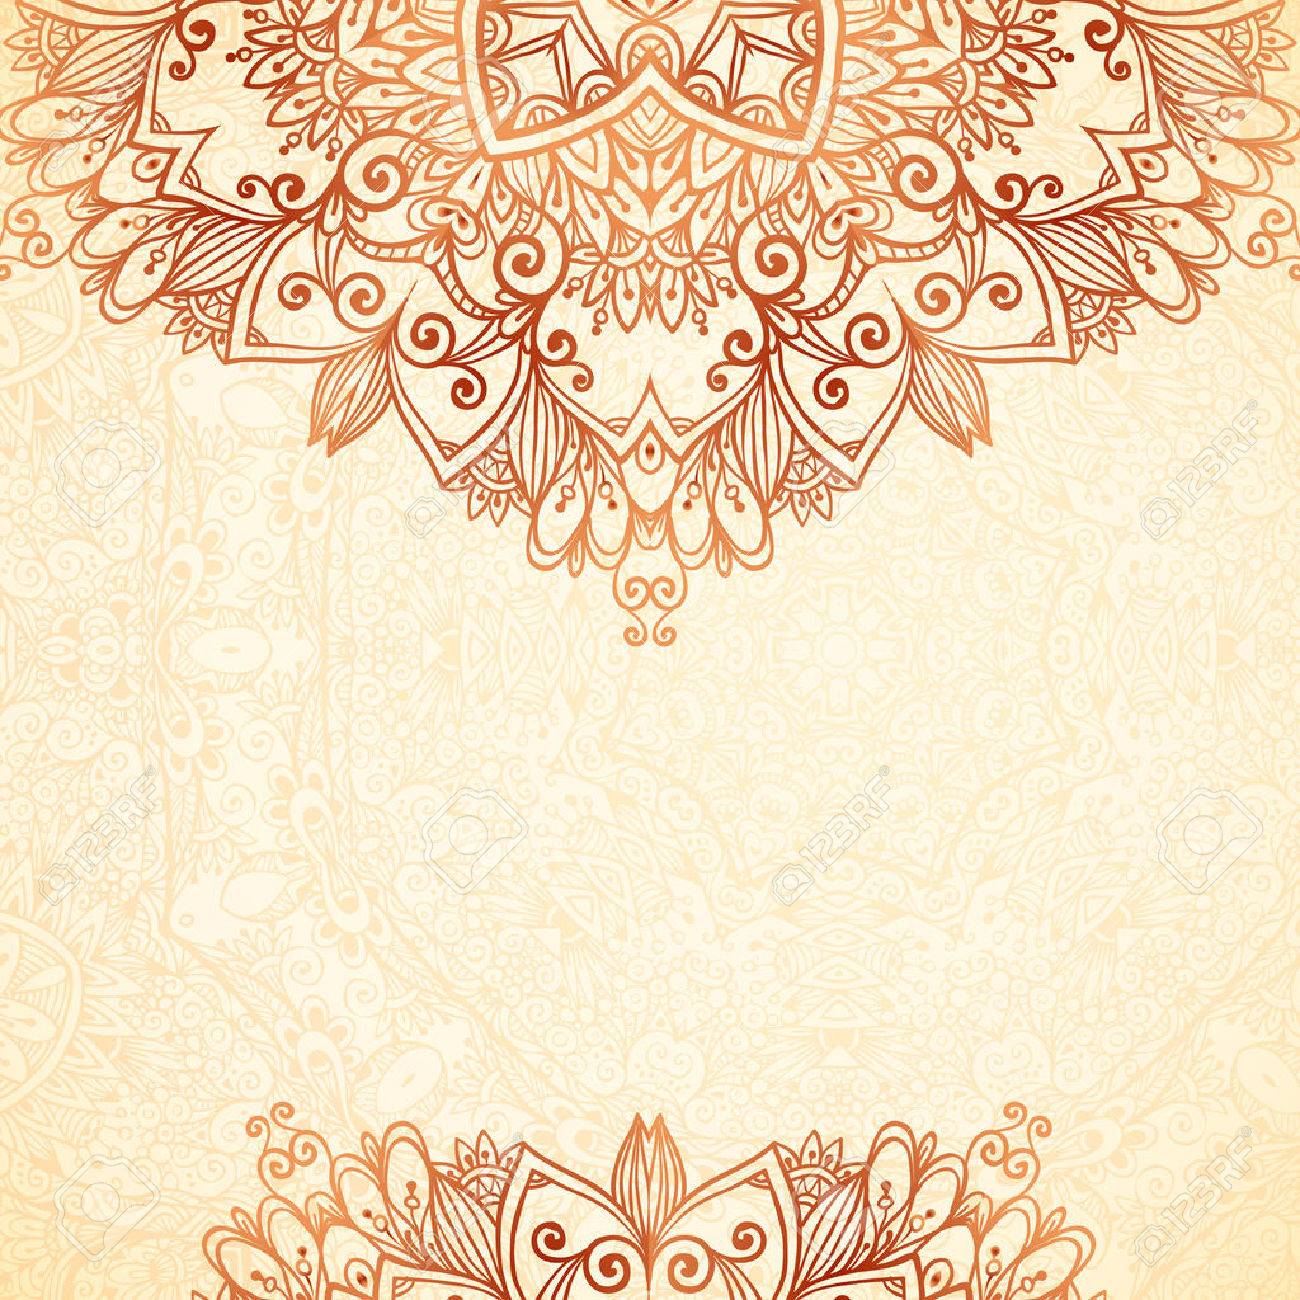 Ornate Vintage Background In Mehndi Style Royalty Cliparts 1300x1300